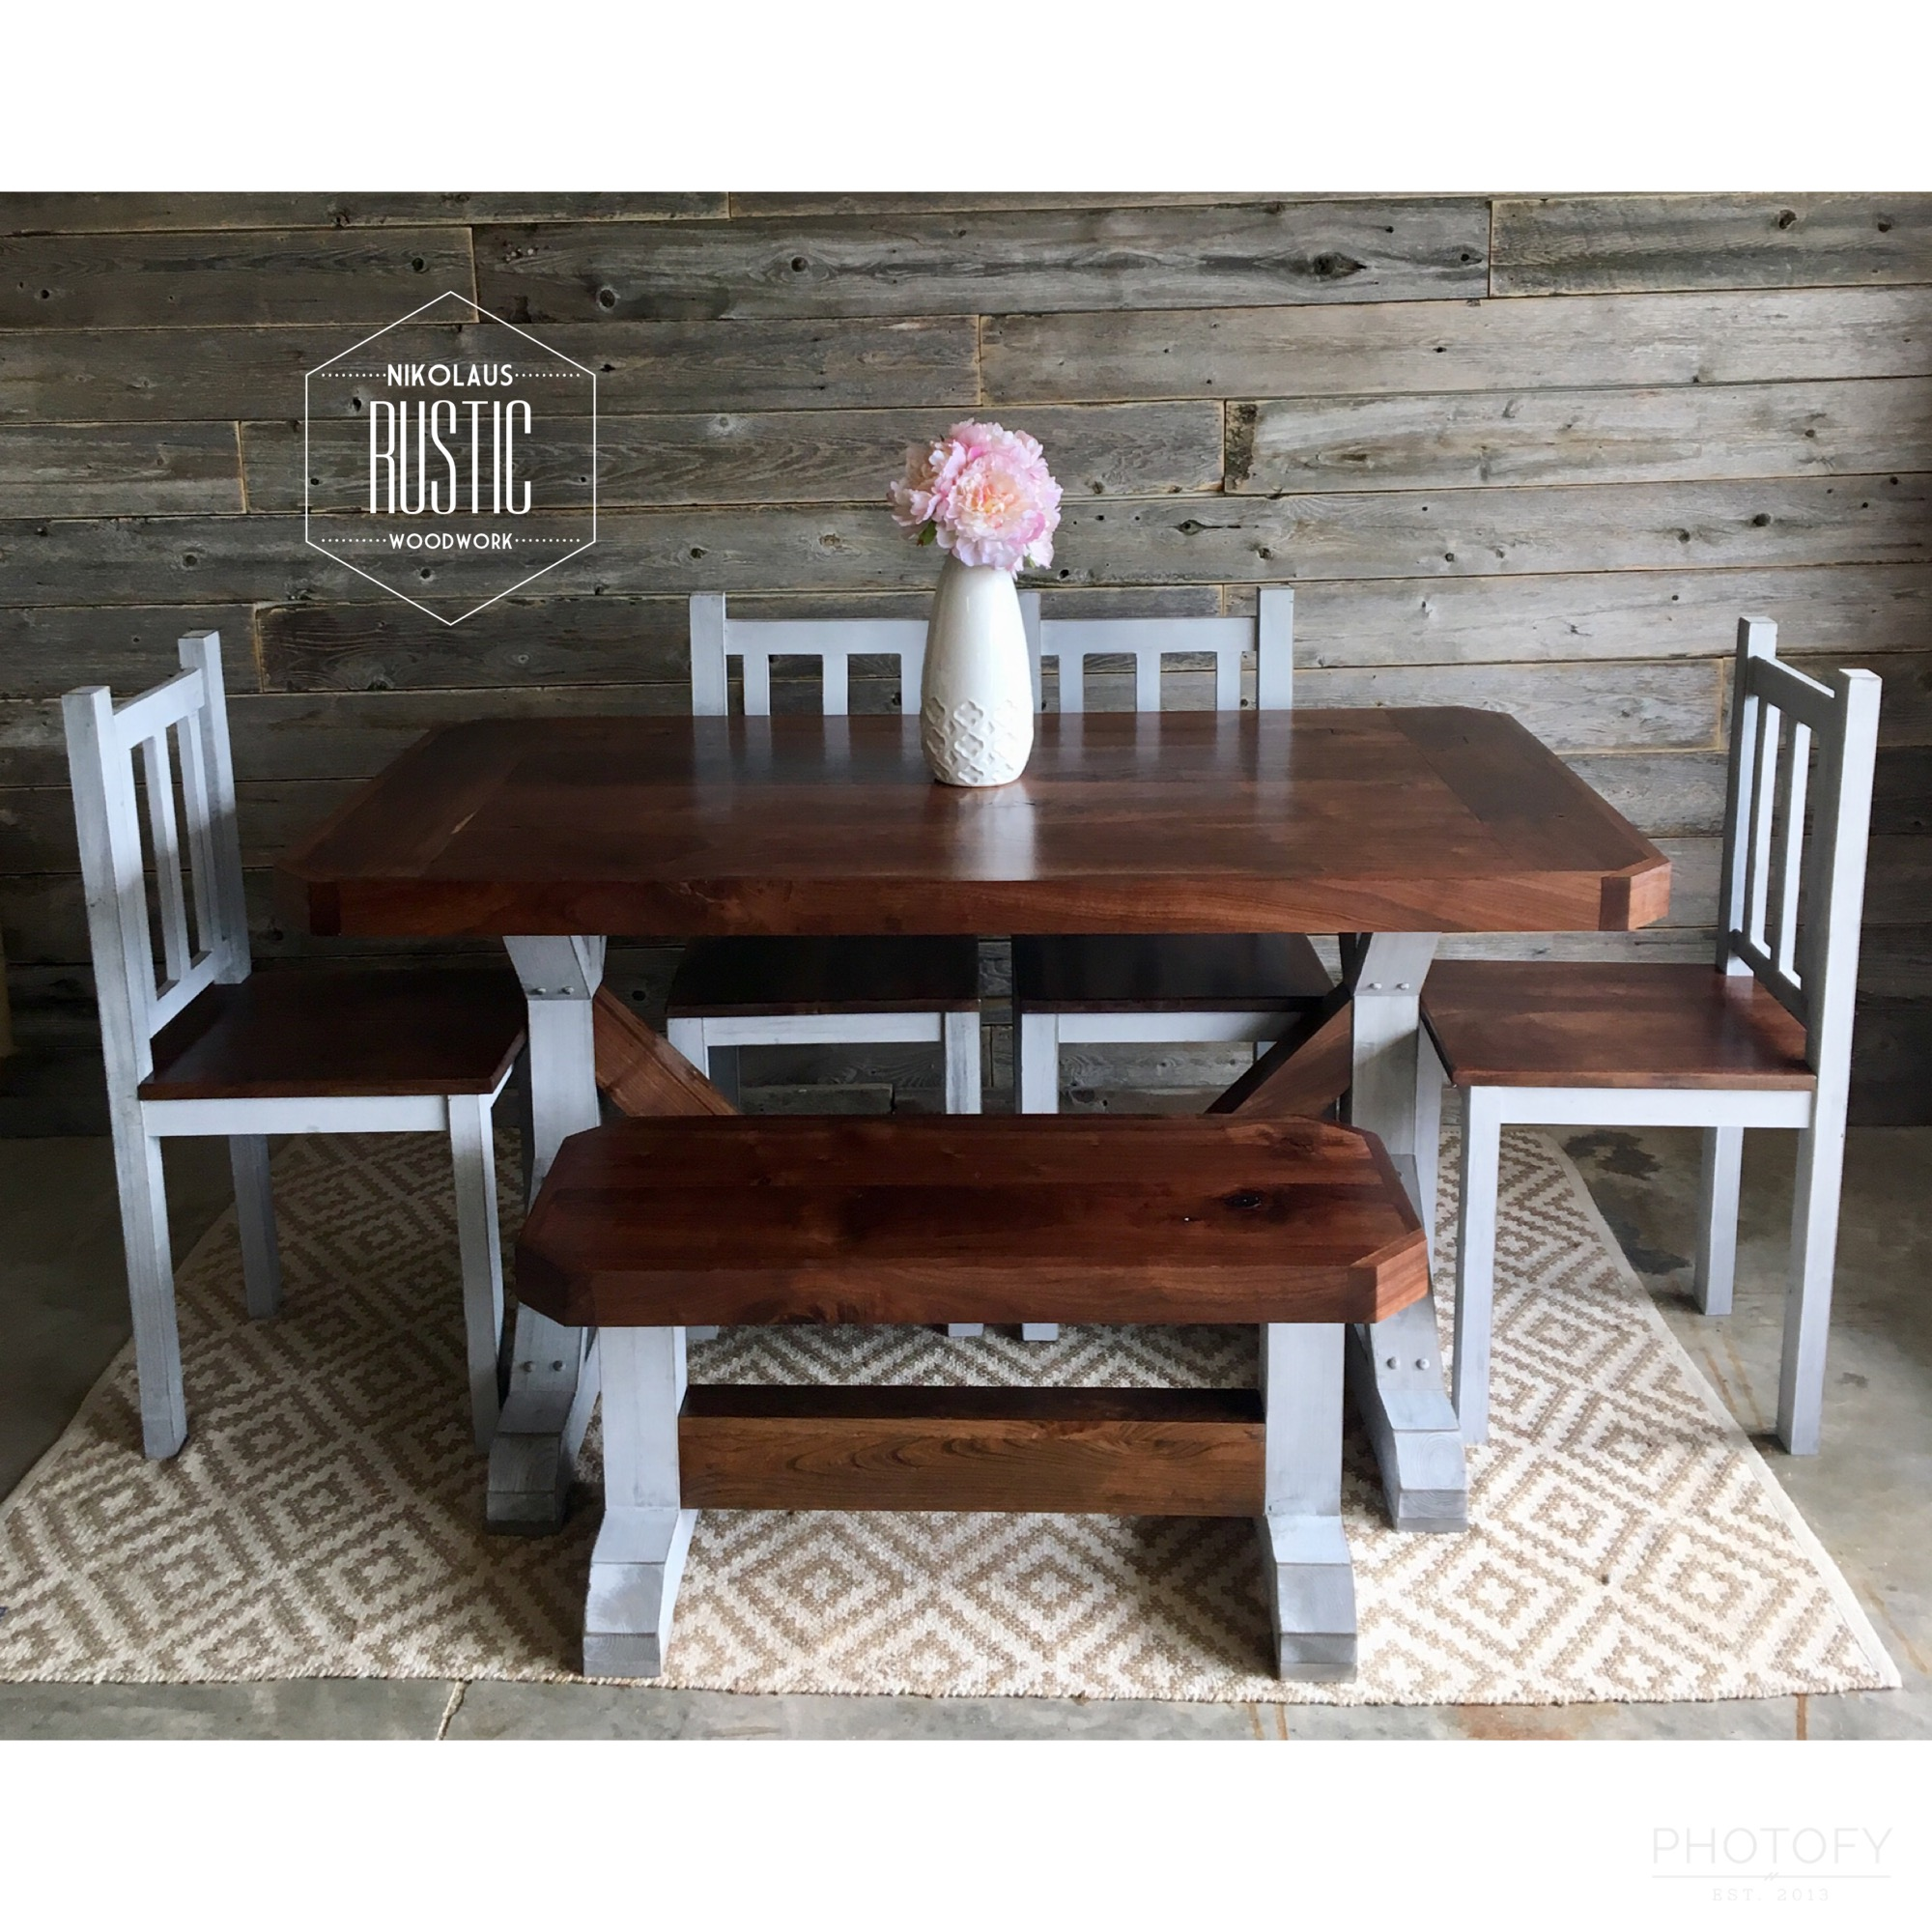 Classic Pedestal Farmhouse Table: A Classic Farmhouse Look! This Farmhouse Dining  Table Has Pedestal Legs, A Matching Bench And A Custom Stain.